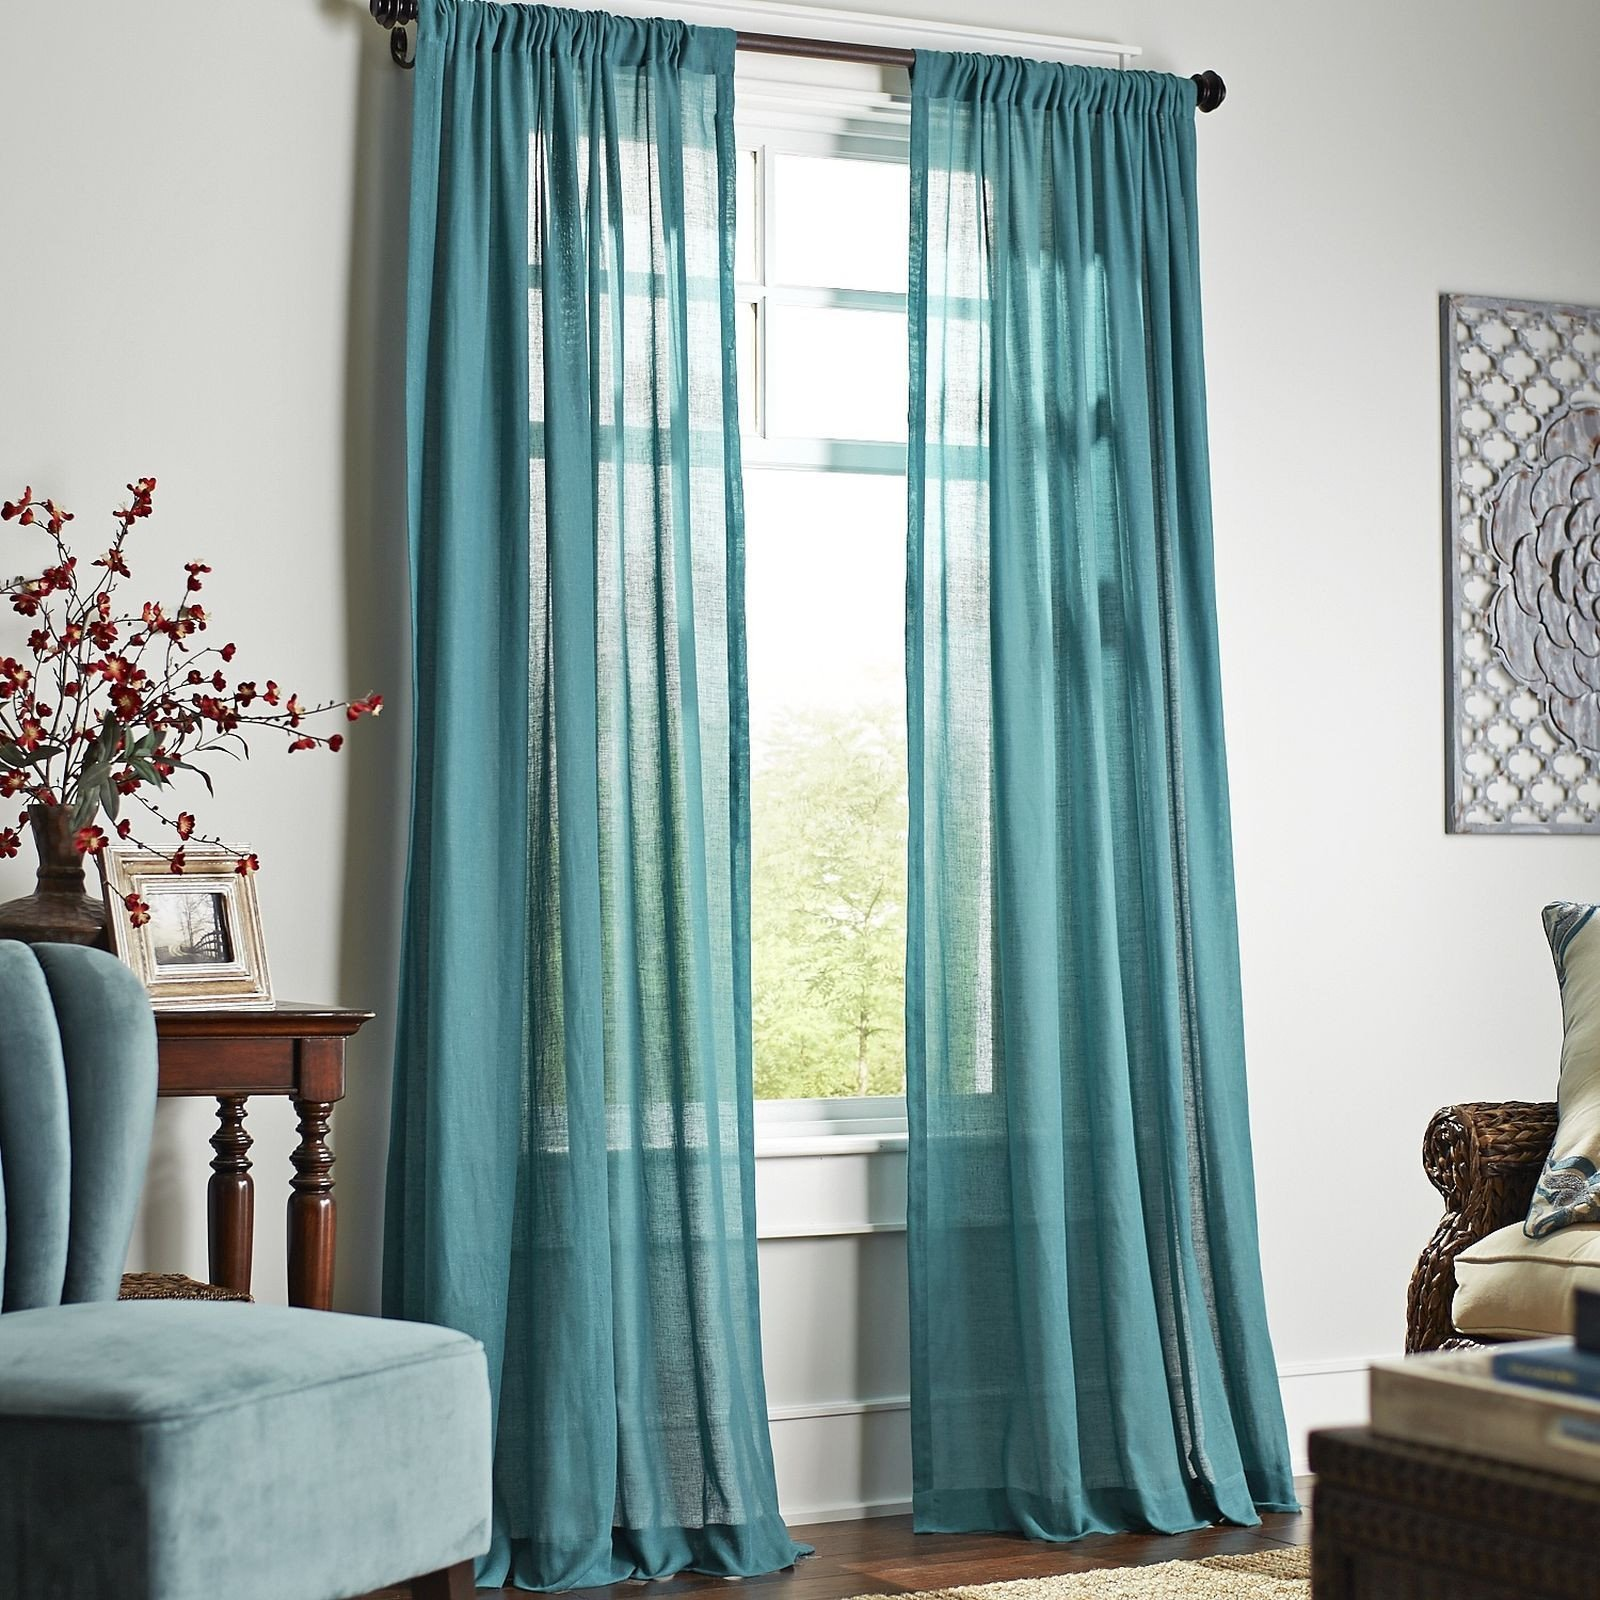 Pretty Curtains for Bedroom Luxury Quinn Sheer Curtain Teal Pier 1 Imports